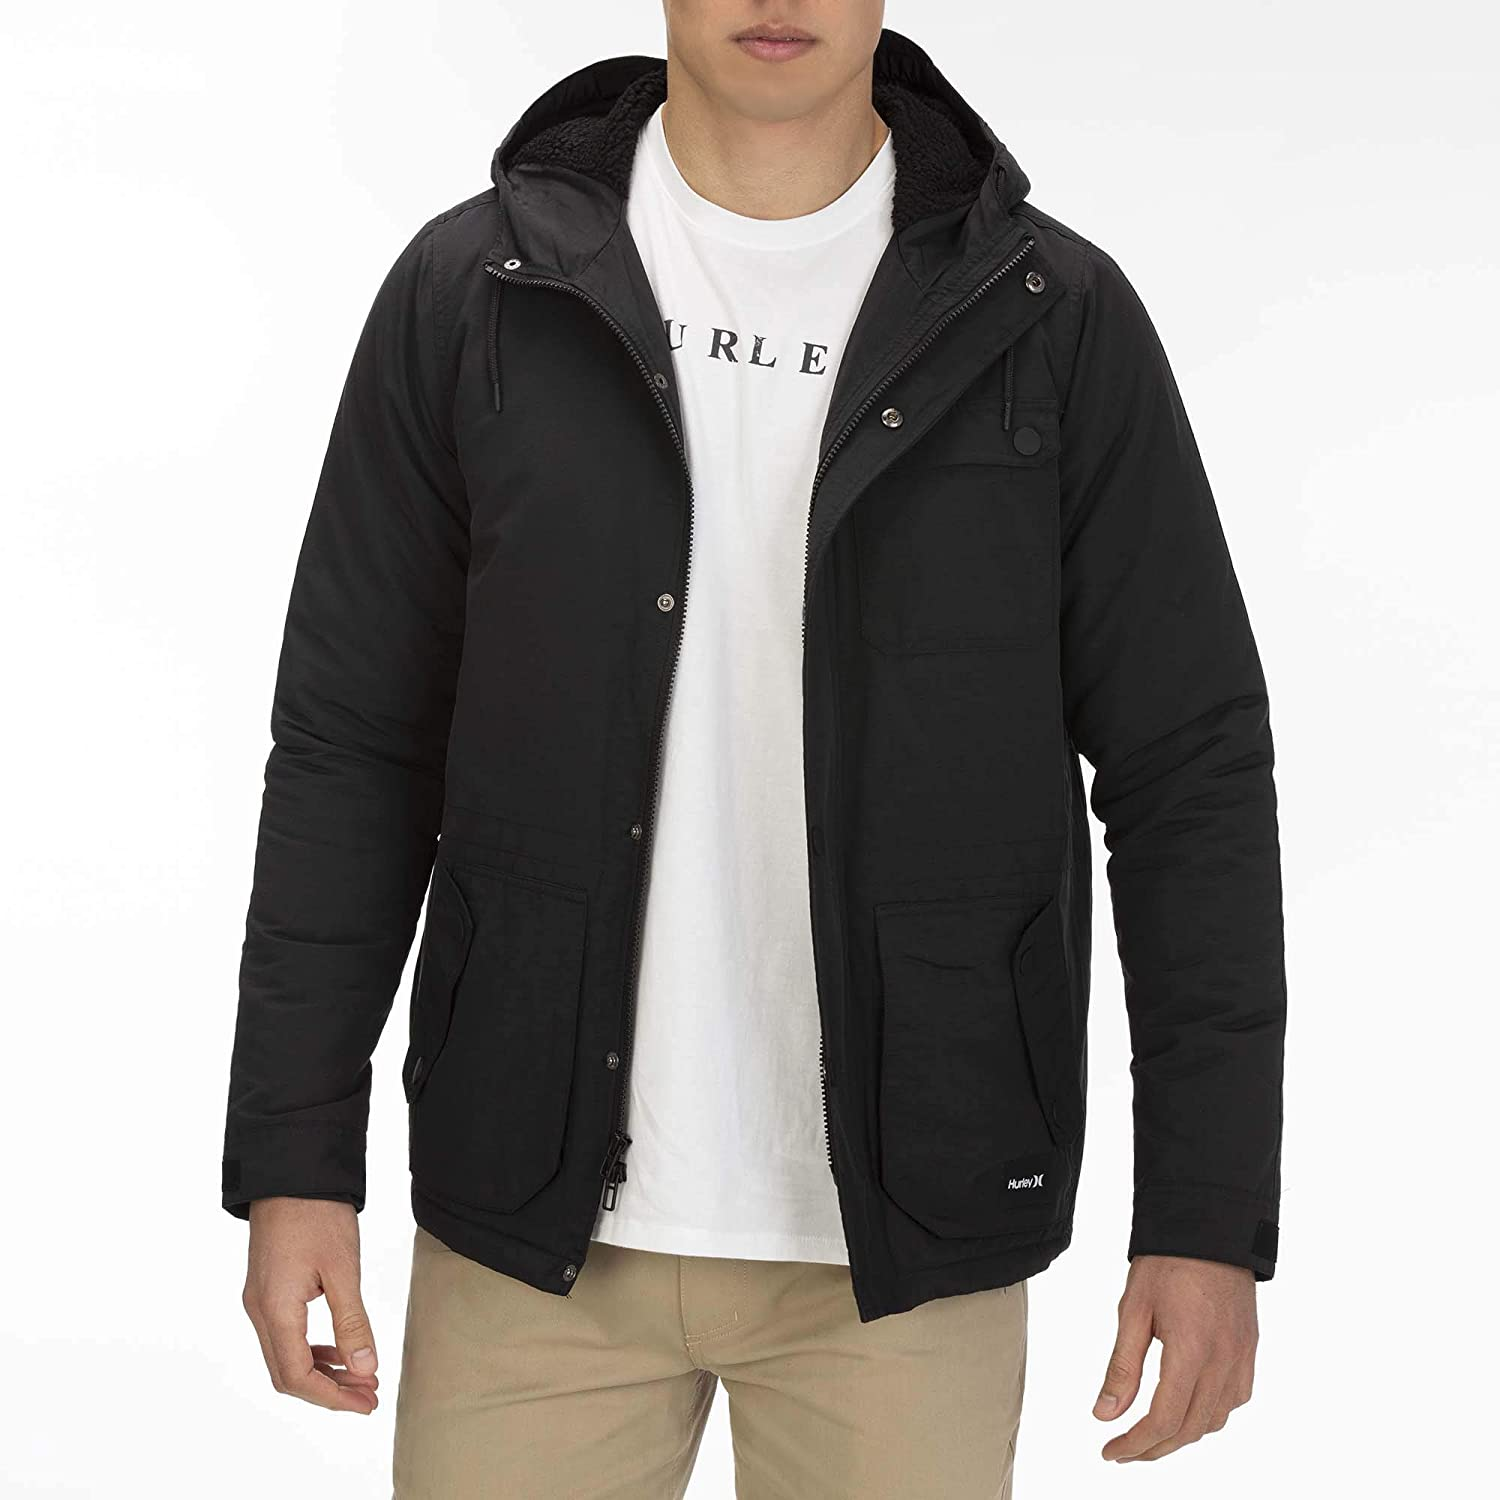 quality where can i buy discount sale Amazon.com: Hurley Men's Slammer Jacket: Clothing